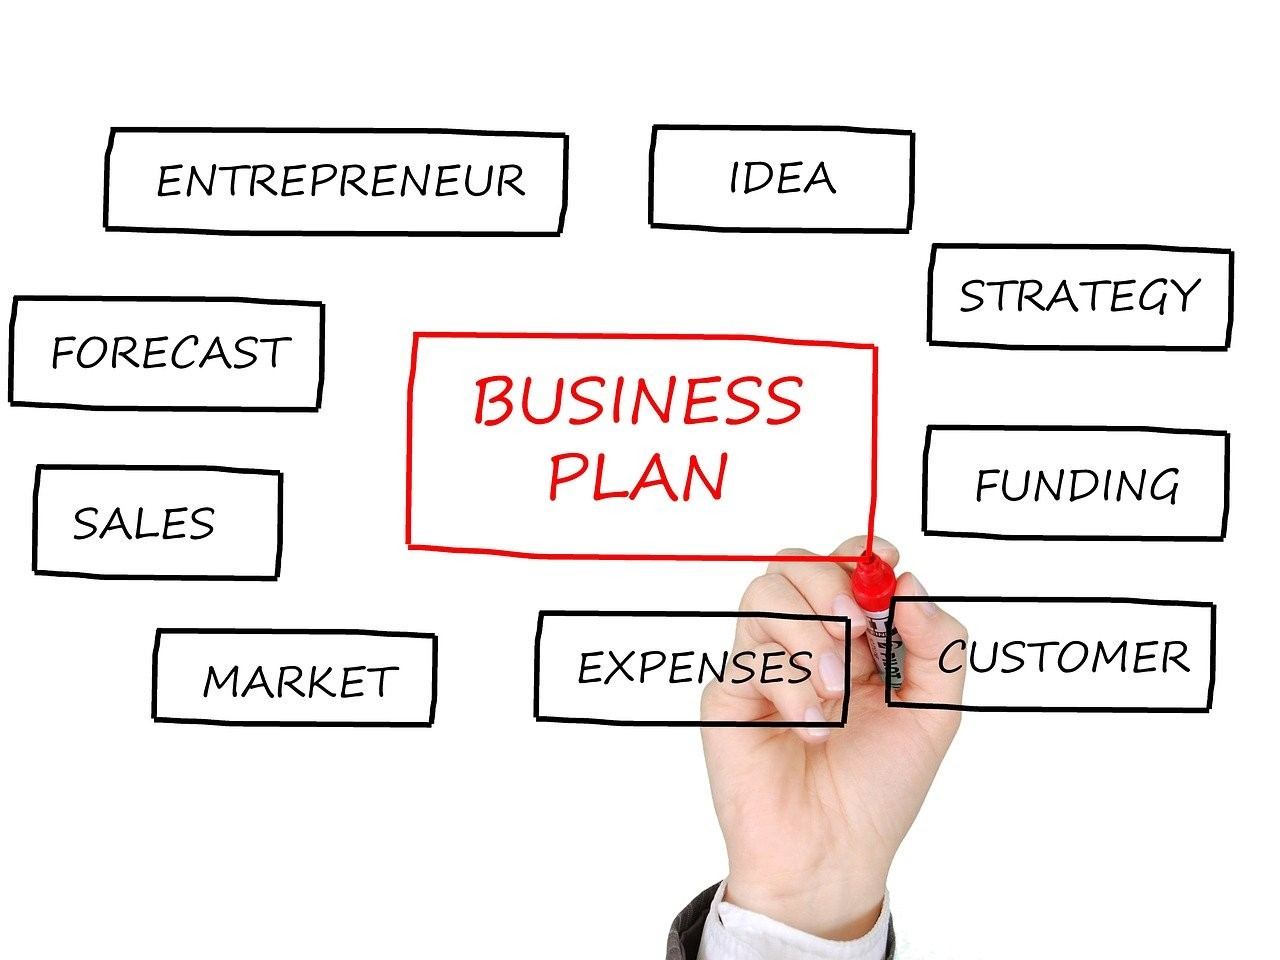 Business Plan Strategy image